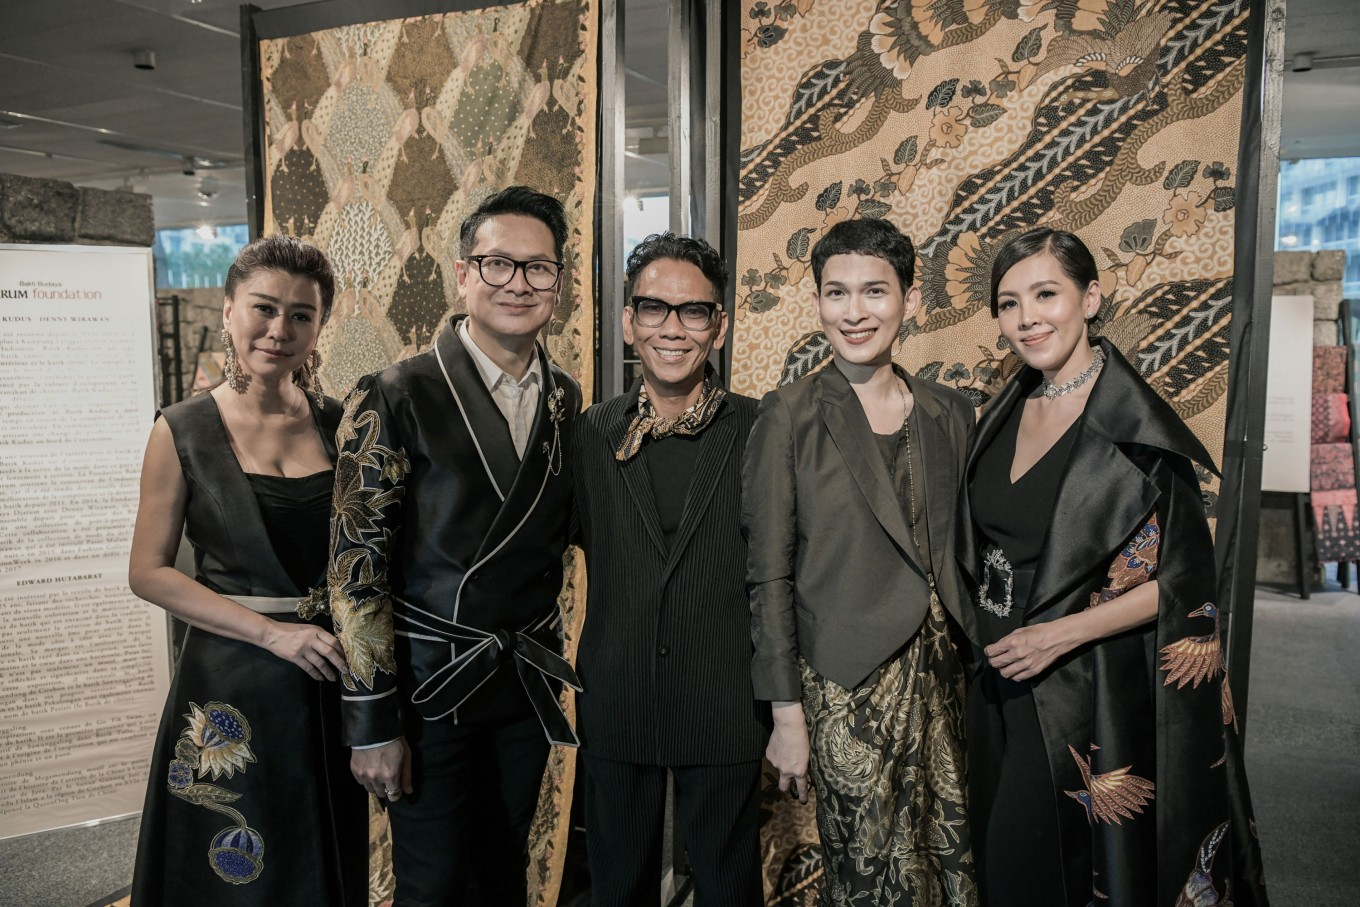 "(Left to right) Jewelry designer Eliana Putri Antonio, Denny Wirawan, Edward Hutabarat, Oscar Lawalata and Program Director at Bakti Budaya Djarum Foundation Renitasari Adrian attend the ""Batik For The World"" exhibition launch at the UNESCO headquarters in Paris, France."